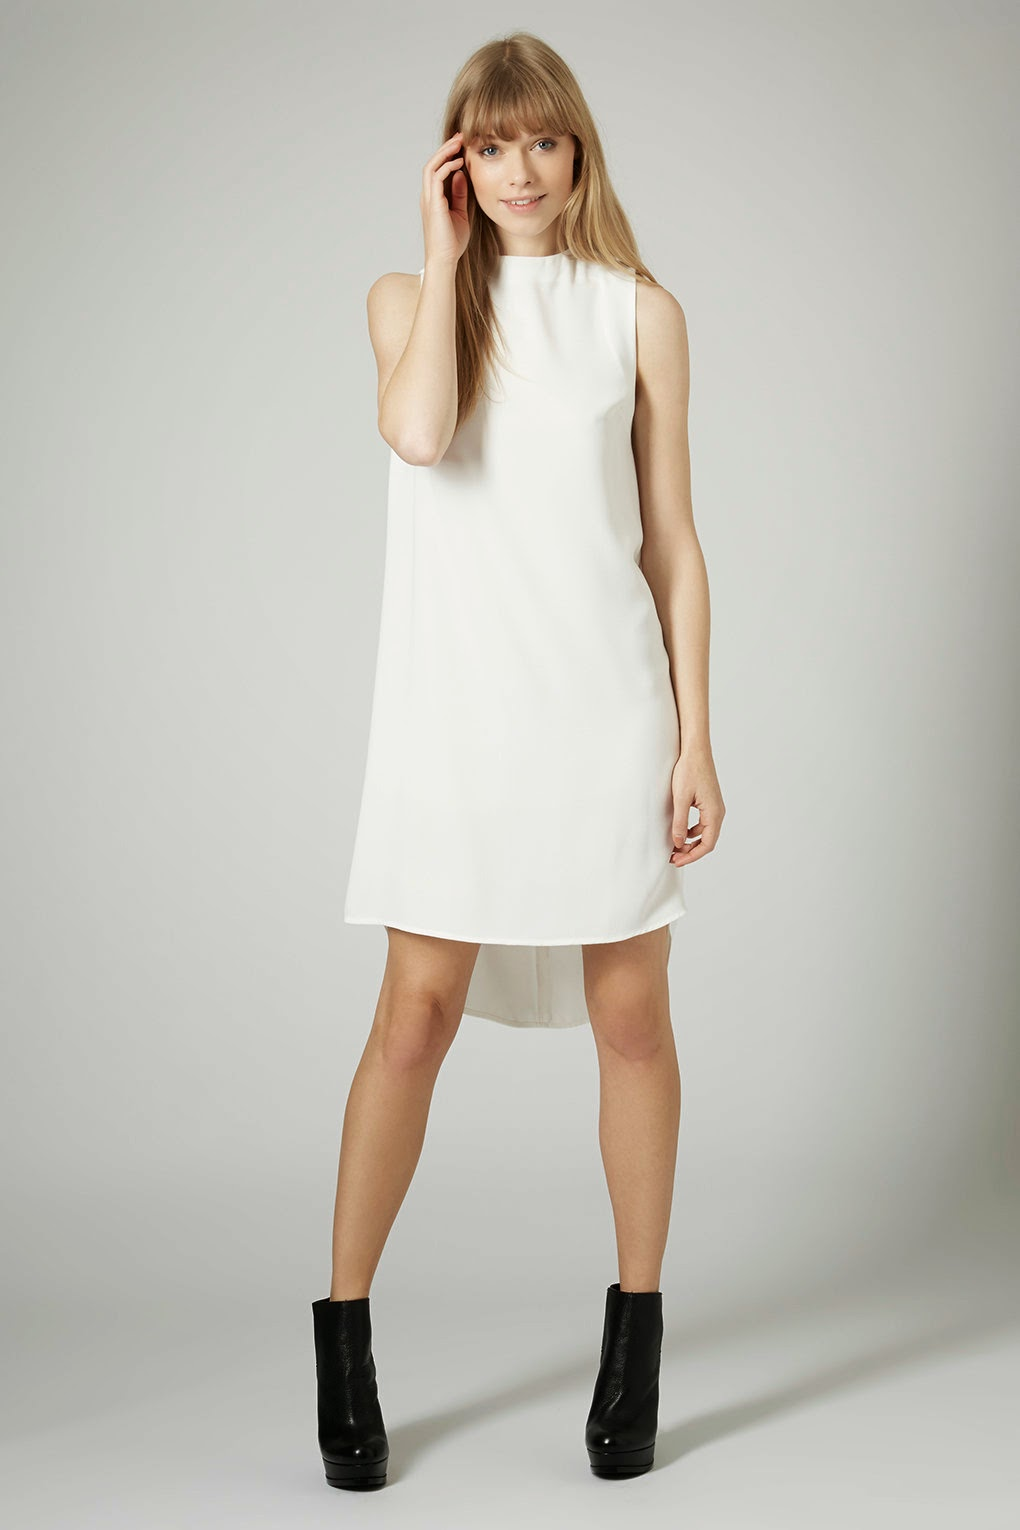 topshop white shift dress